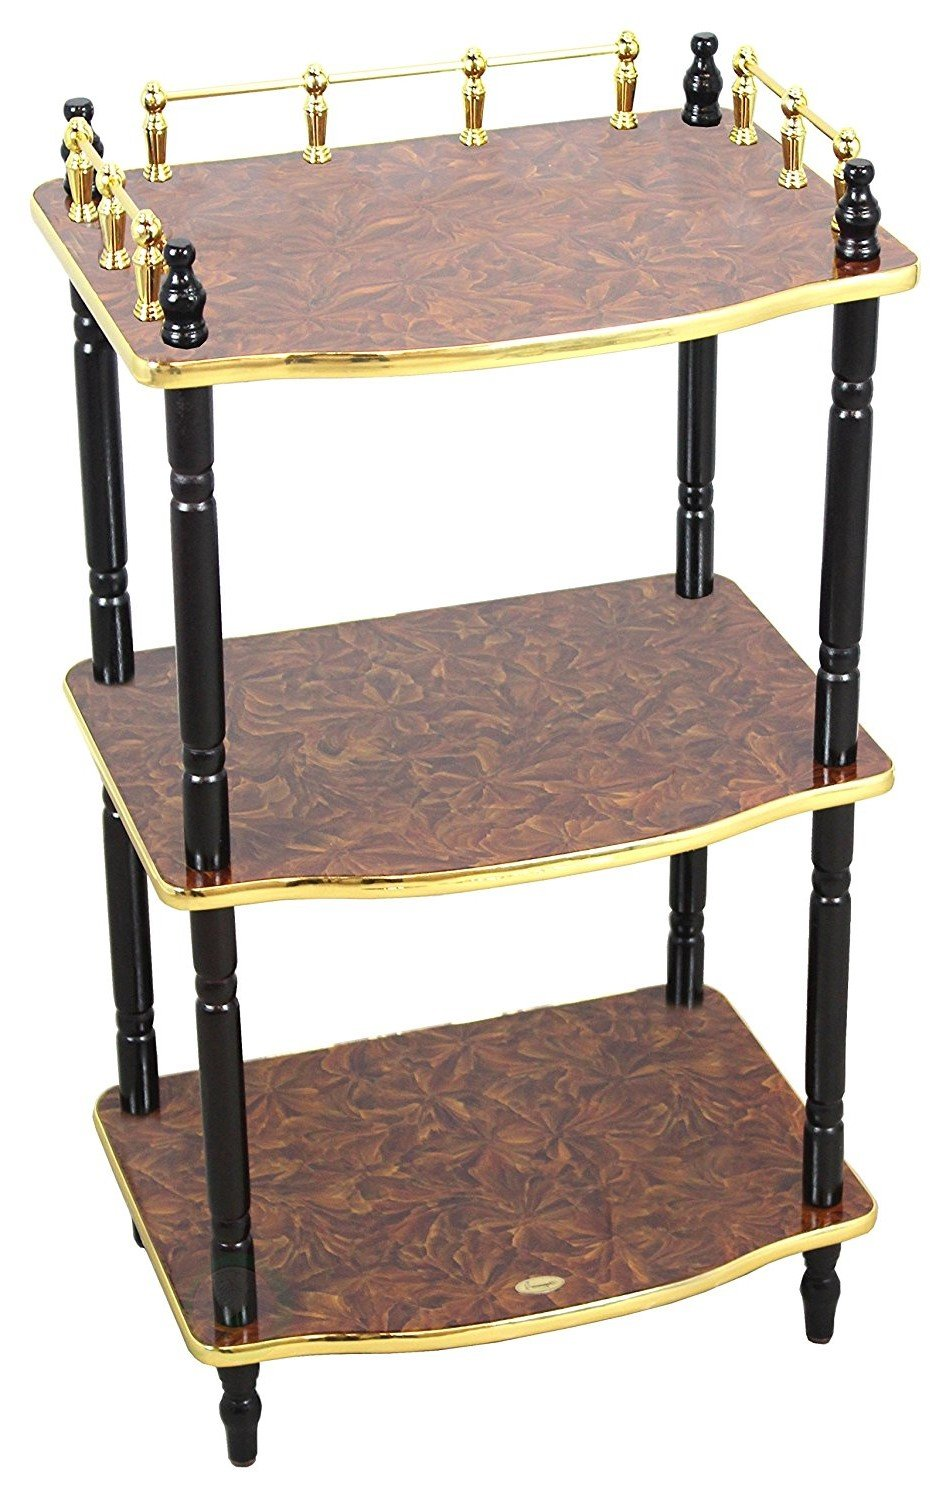 Multi-Tiered Telephone Table, Night Stand, Elegant Gold Polish Railing, Plant Stand, Living Room, Book Shelf Decor, Espresso, Avoid Slipping, Comfortable, Creative, Bedroom, Home, Office